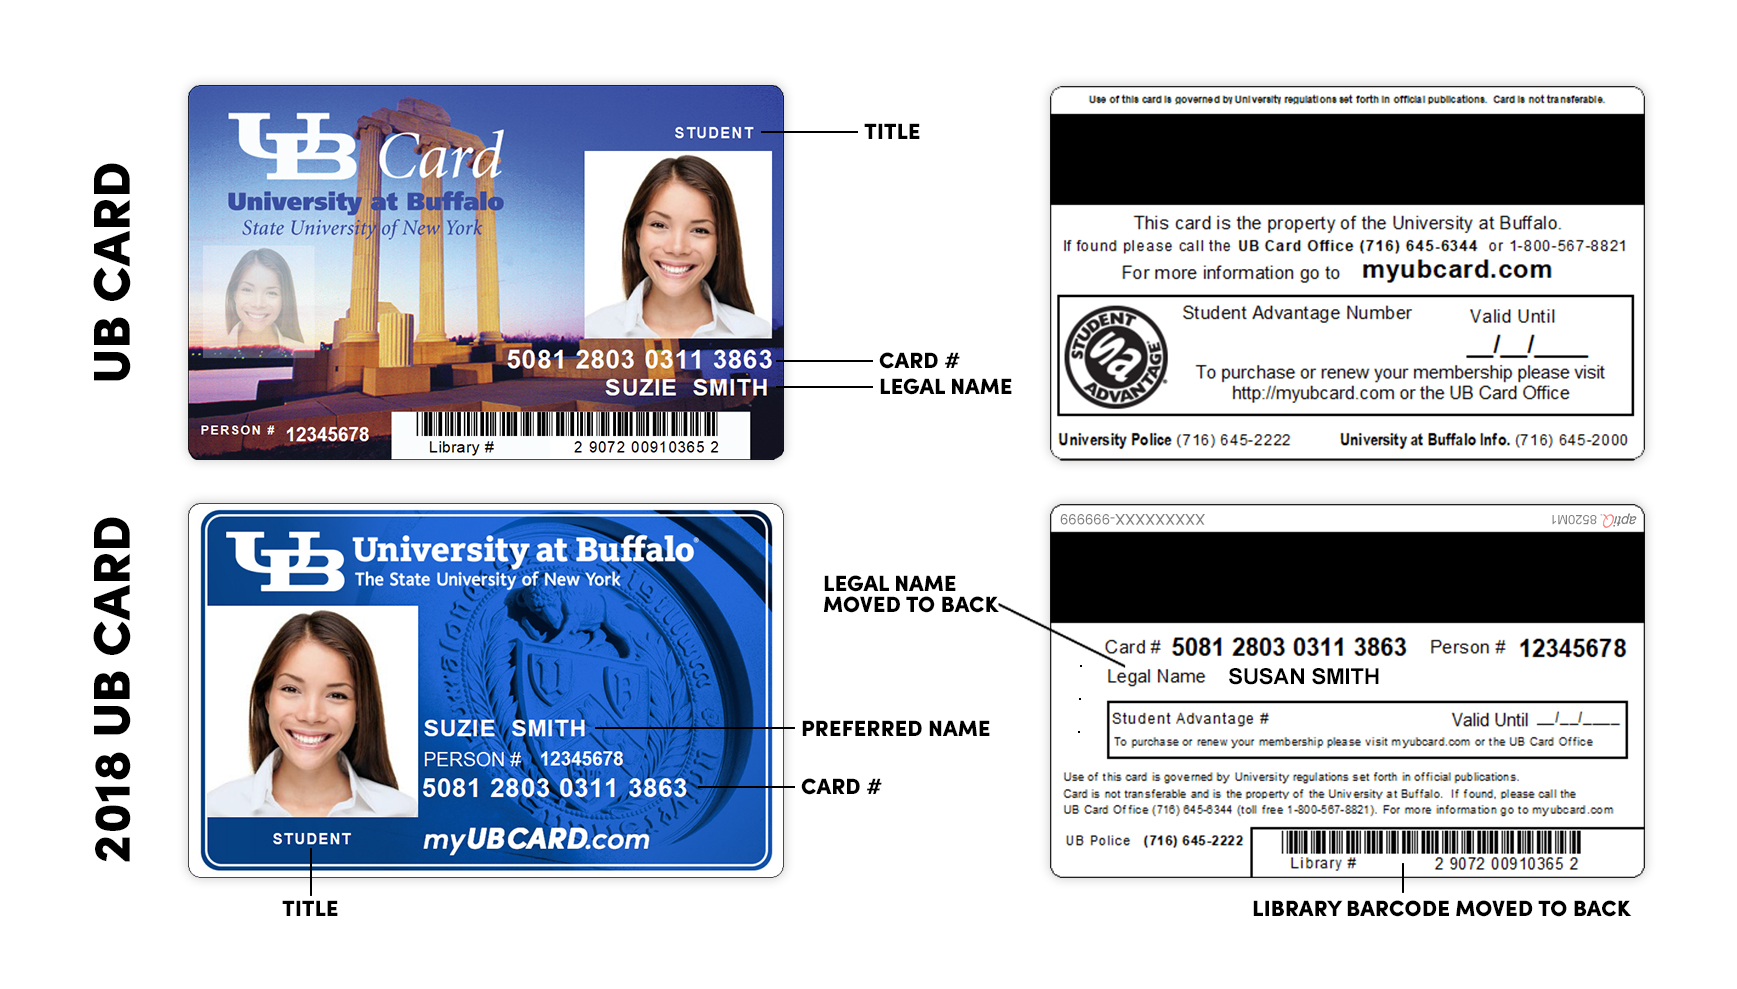 Legal name moved to back, preferred name on the front, library card barcode moved to the back.